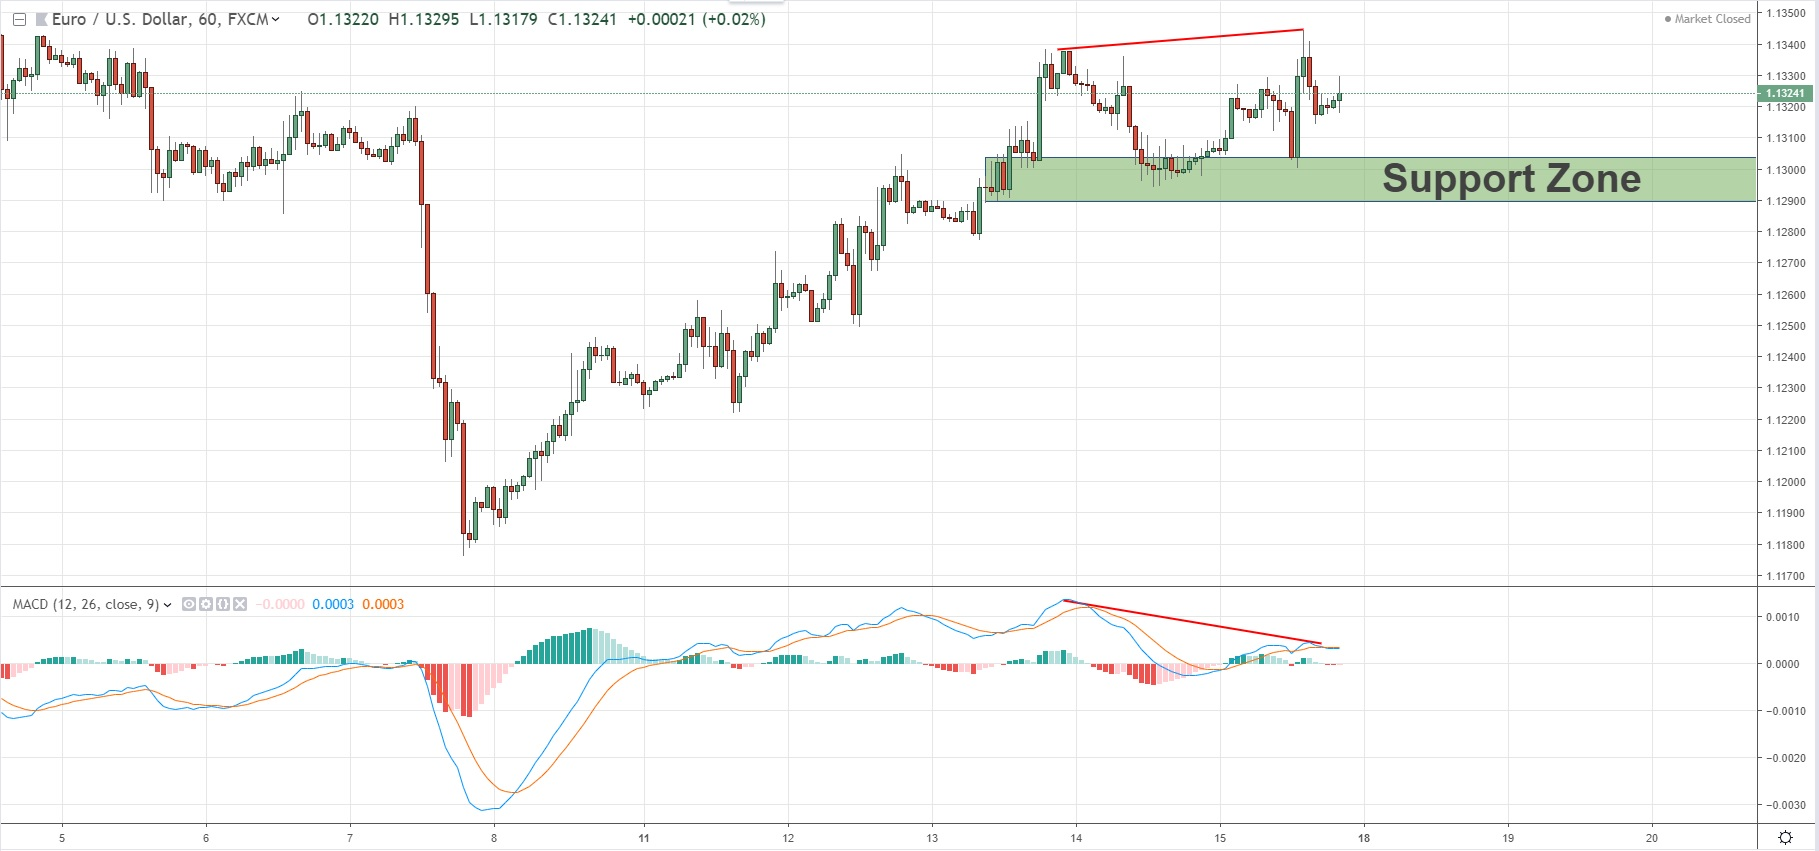 MACD Divergenece With Confirmation Zone On EURUSD 16/03/2019